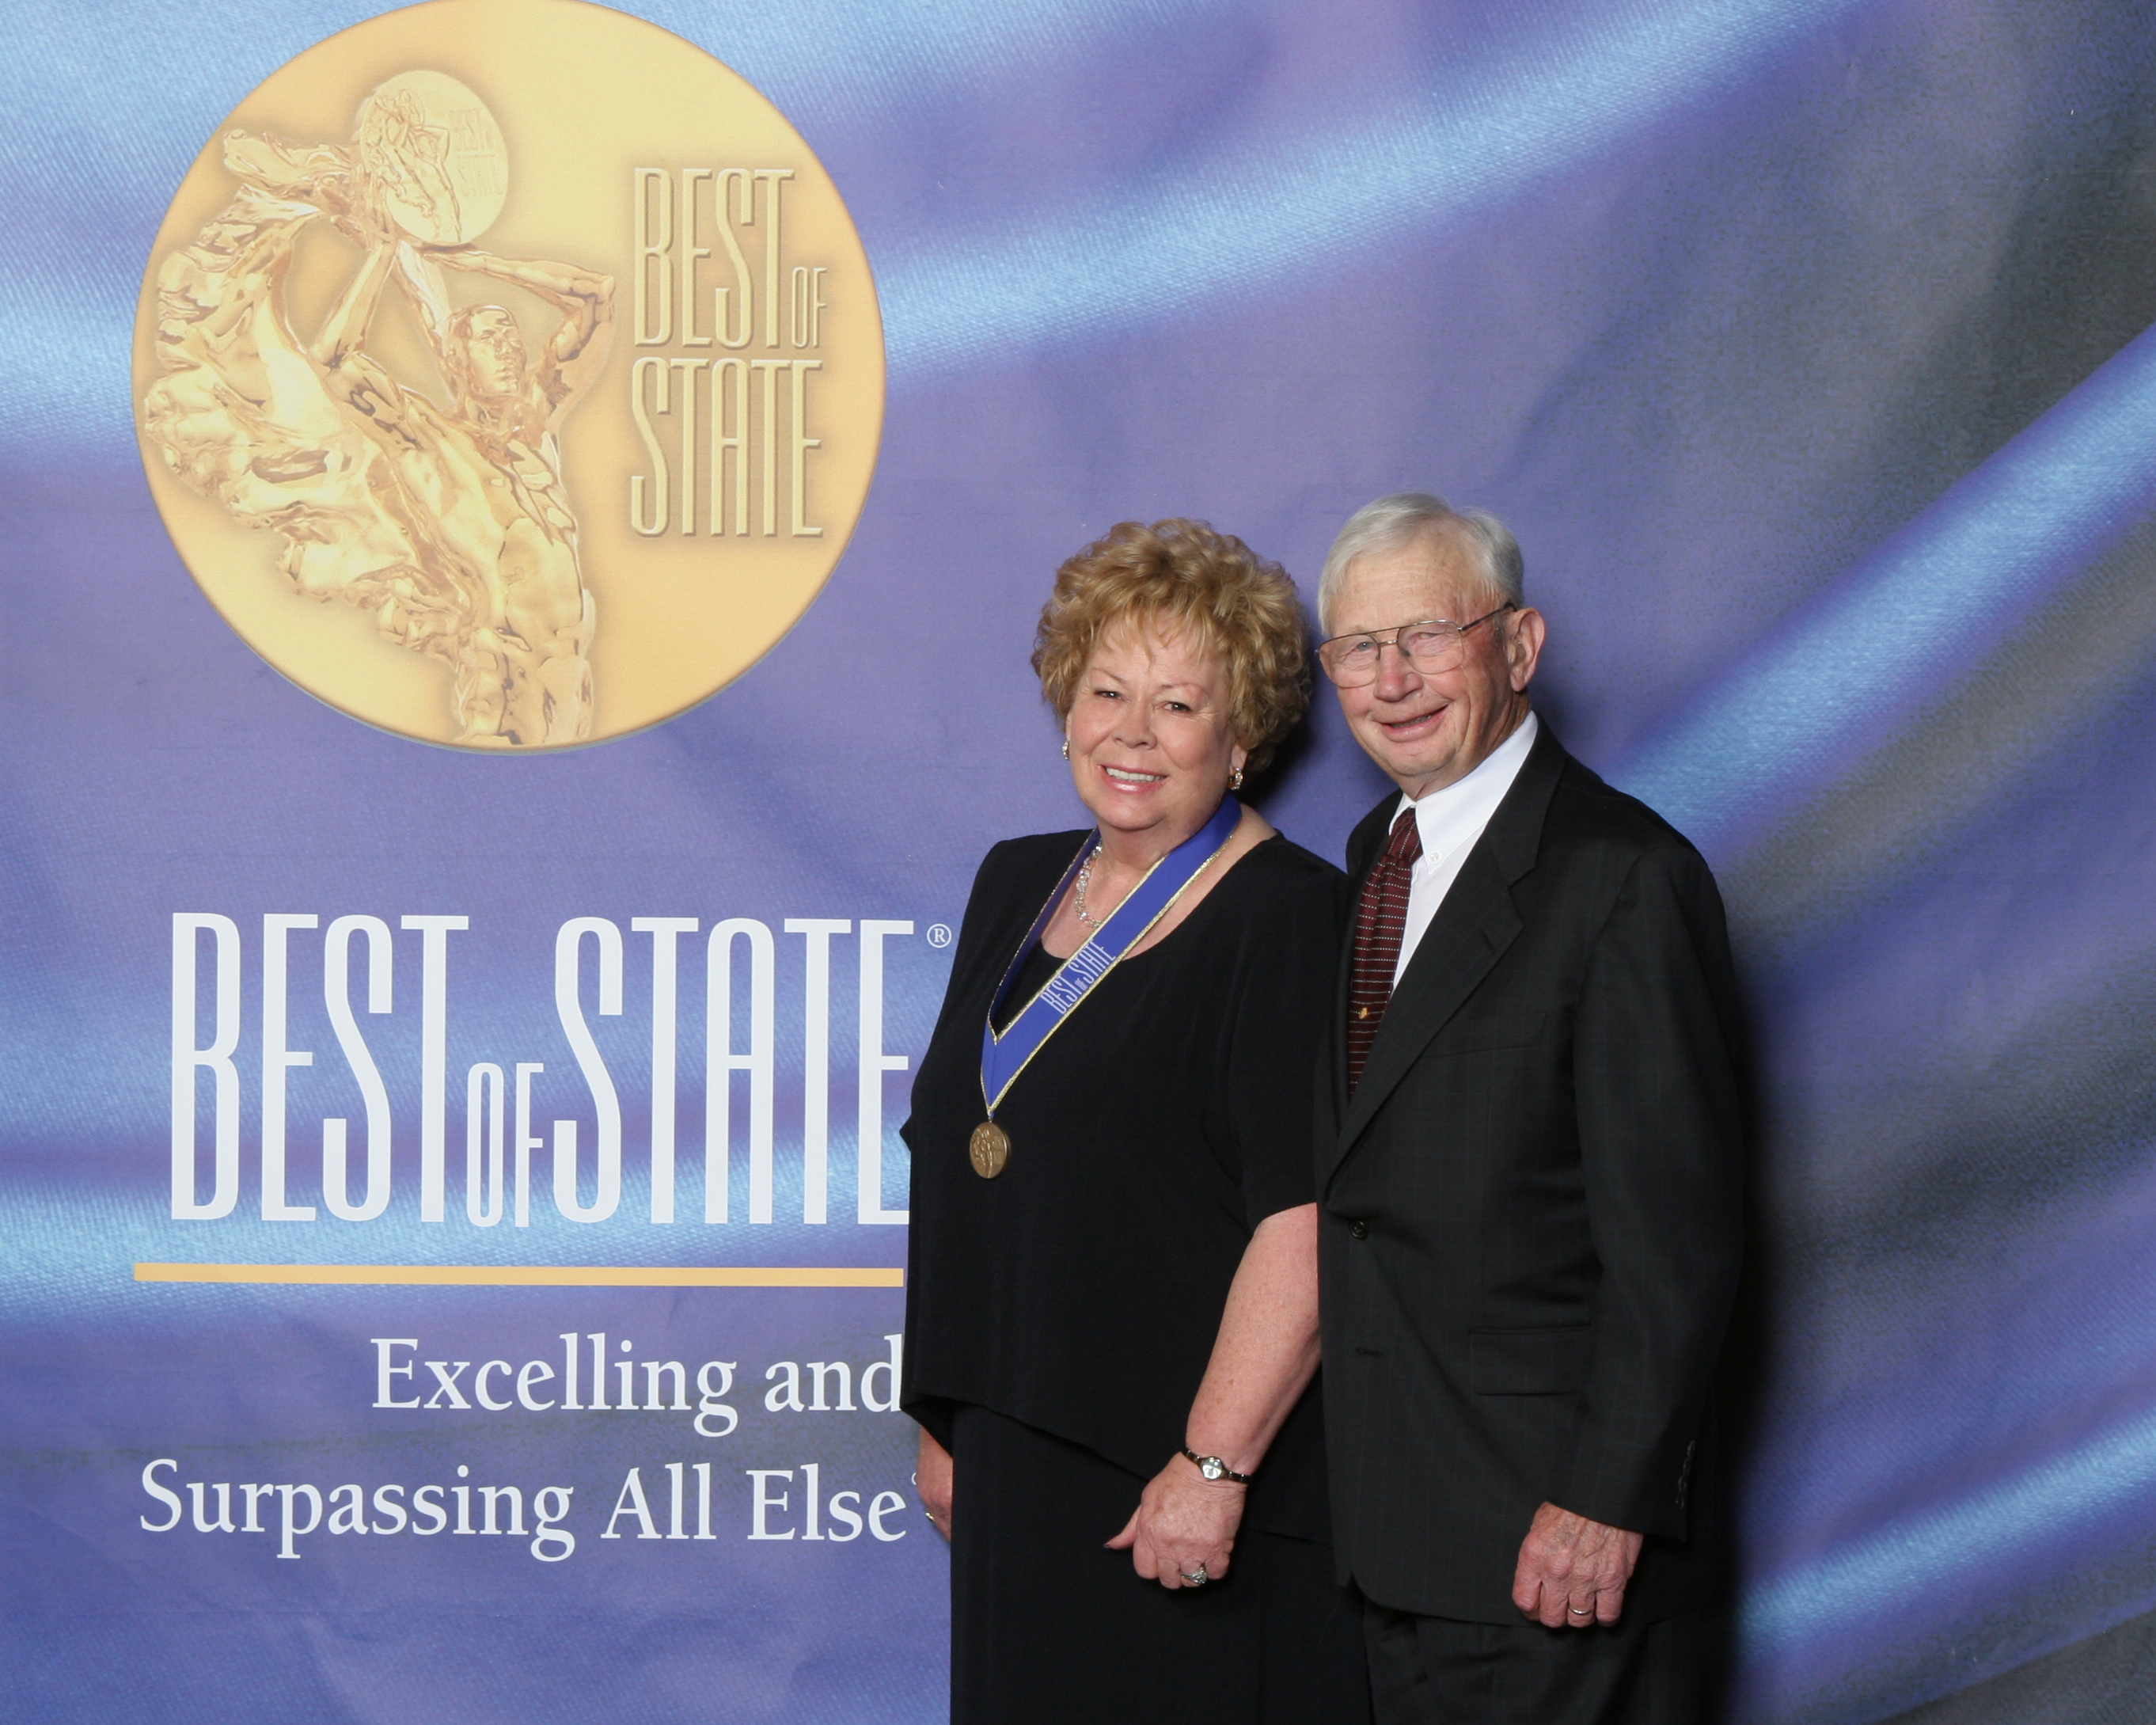 Mrs. Marie Cavanaugh and her husband George Cavanaugh accept Utah's 2005 Best of State Award for Candy / Confectionary